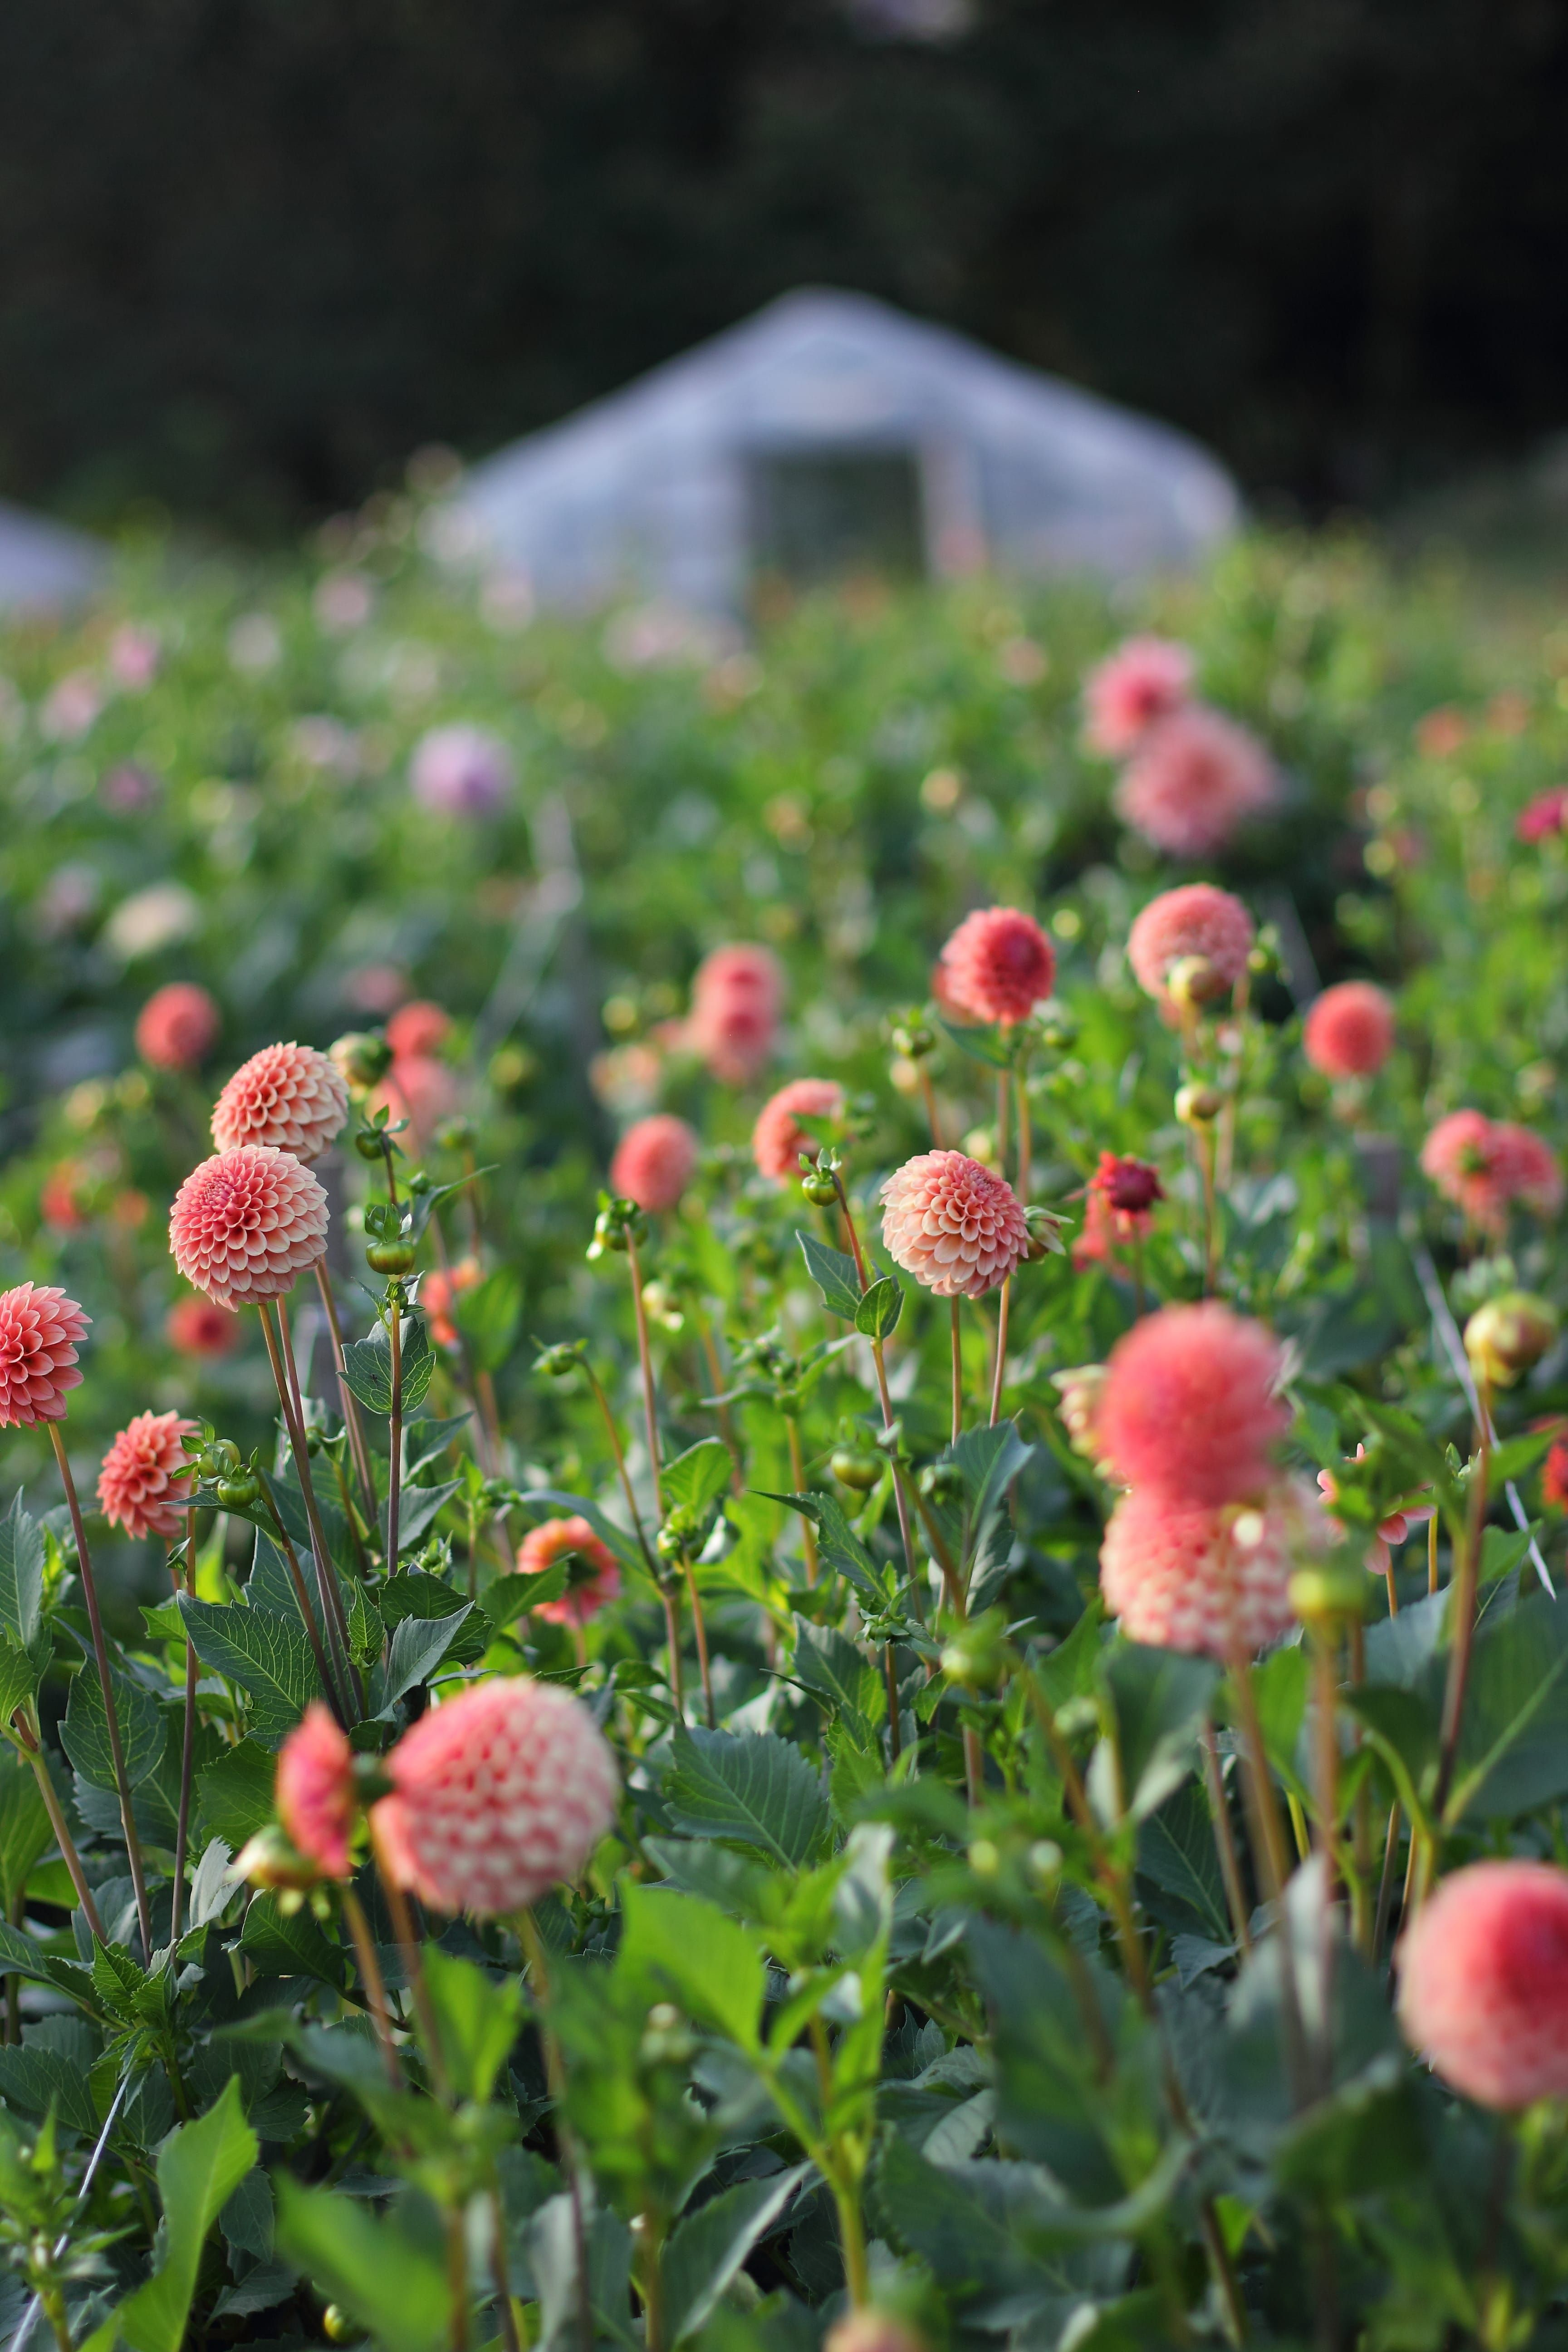 Dahlias 'Rose Toscano' growing in the fields at Love 'n